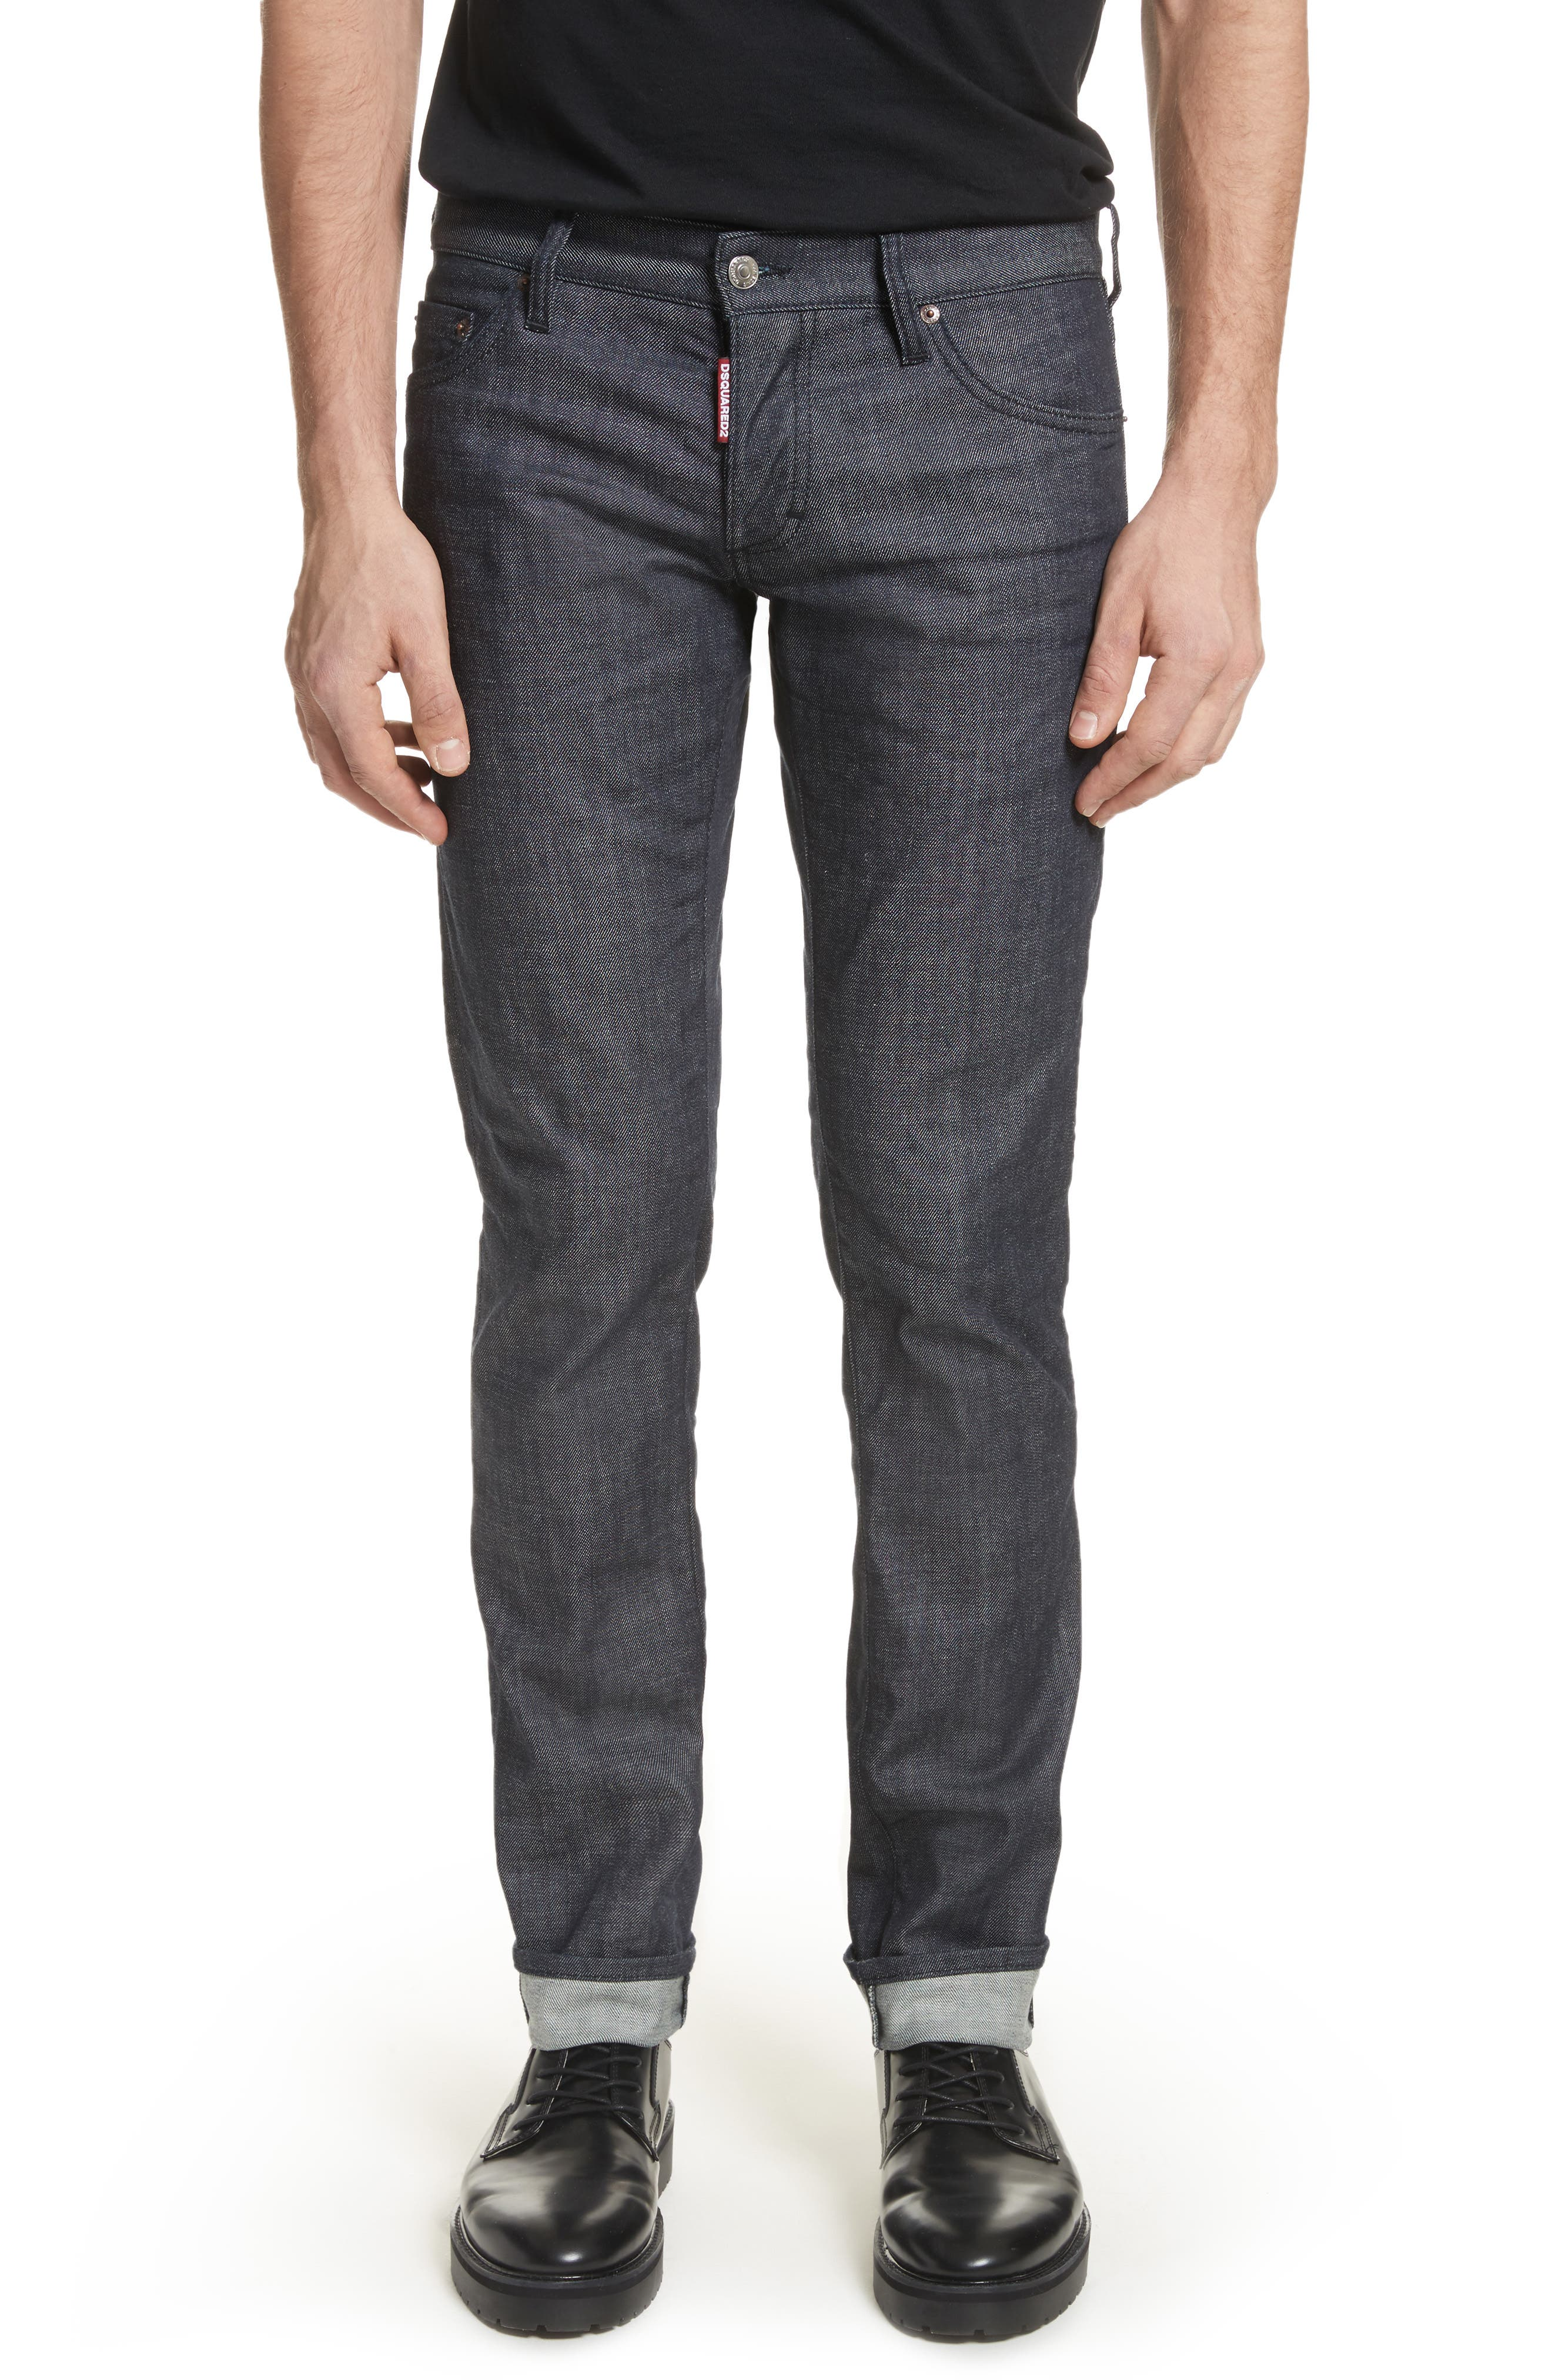 24-7Star Slim Fit Jeans,                             Main thumbnail 1, color,                             NAVY/BLUE